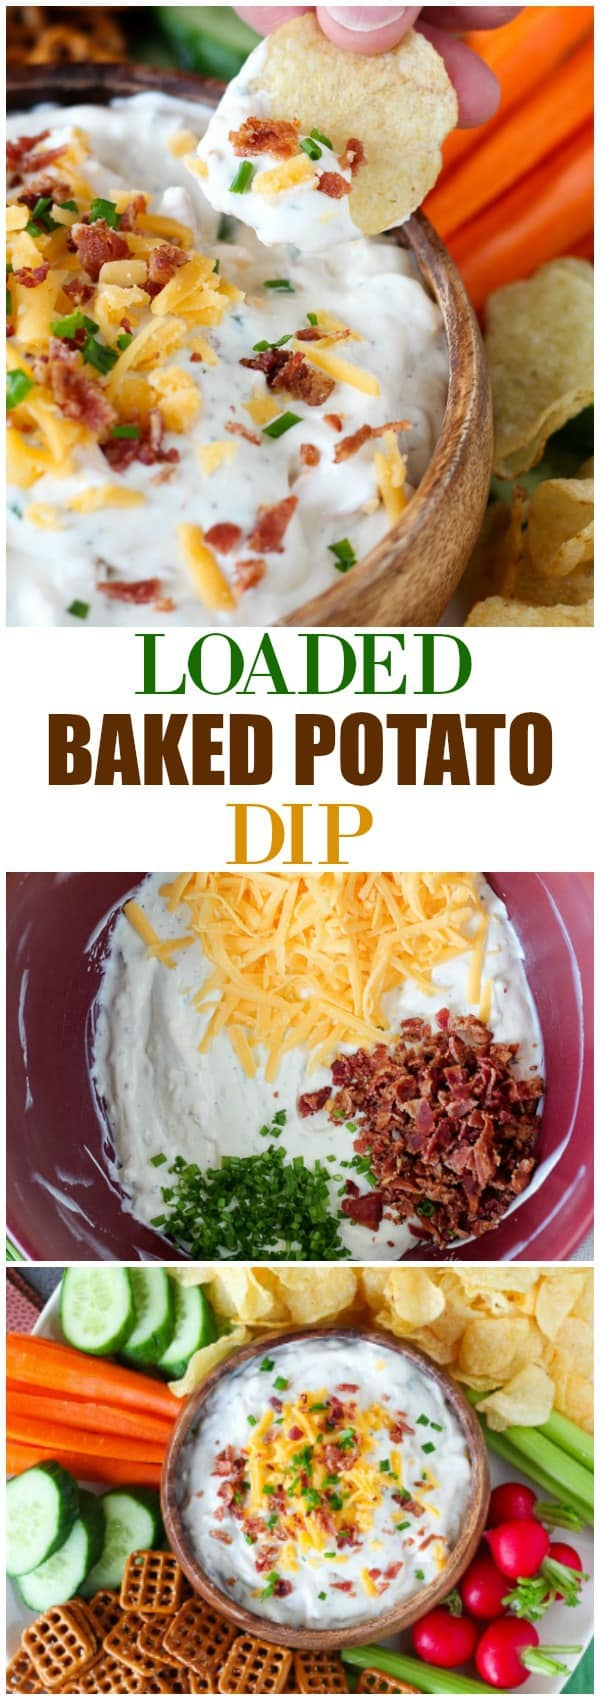 Loaded Baked Potato Dip - A simple and tasty dip filled with sour cream, cheese, bacon, chives and ranch dressing mix. A crowd-pleasing favorite!